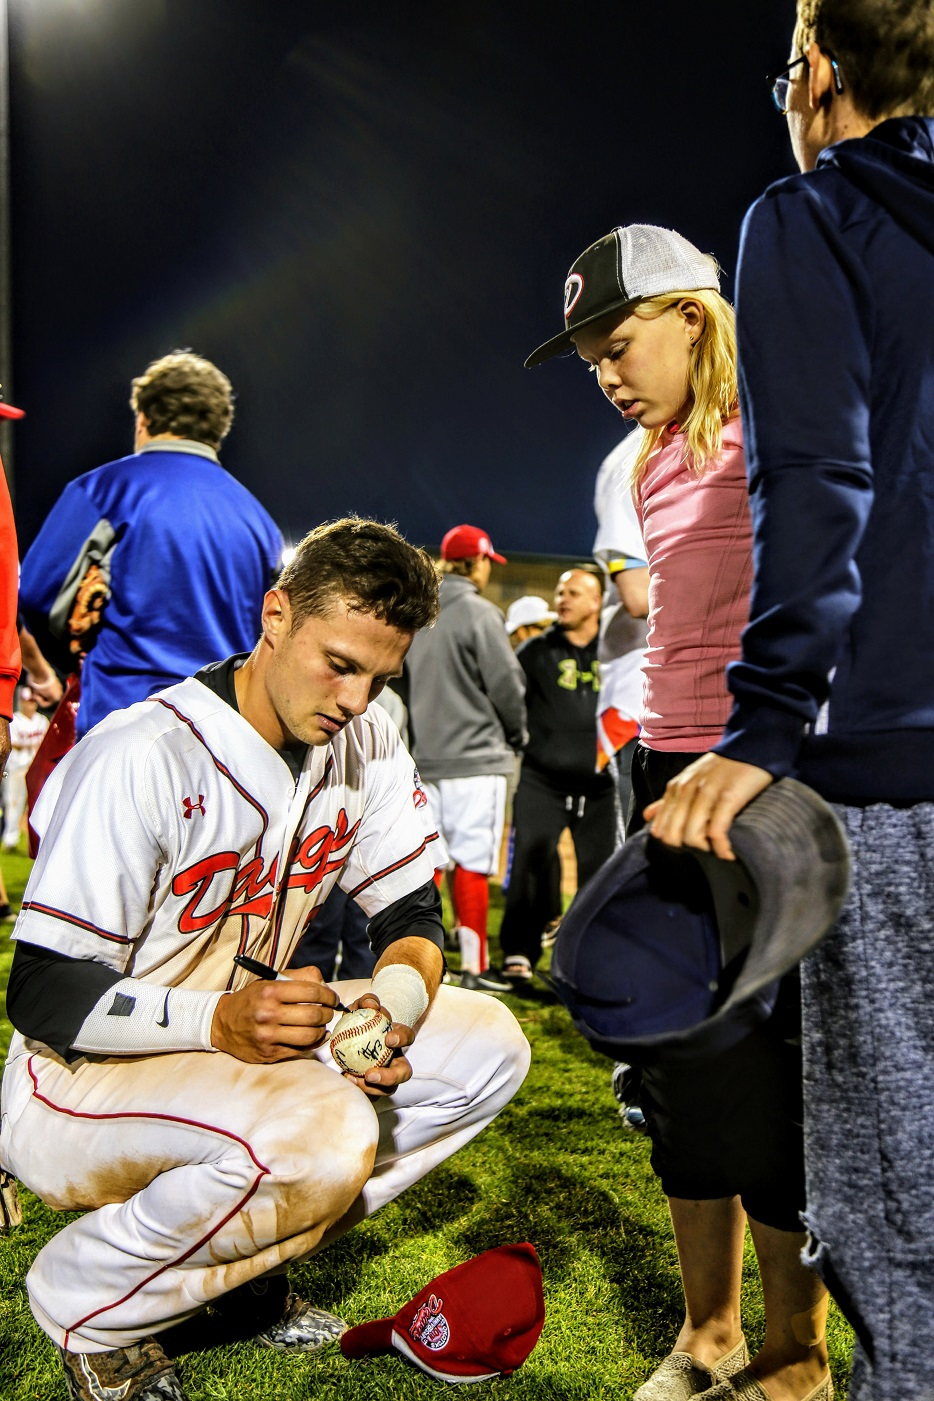 Peter Hutzal (Calgary, Alta.) signs a post-game autograph.